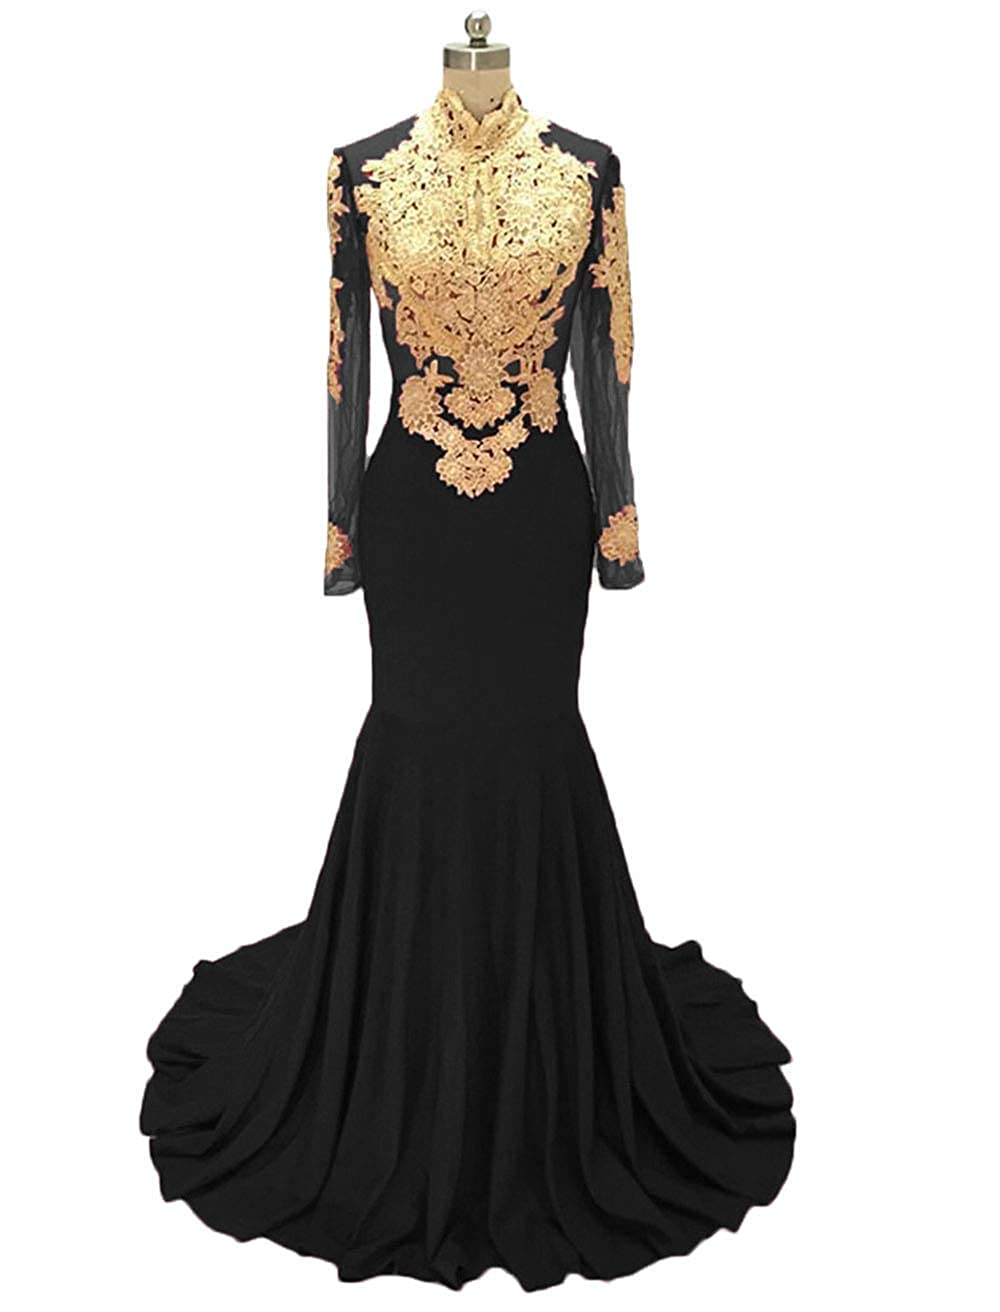 Black alilith.Z Sexy Mermaid Prom Dresses gold Appliques Long Sleeve Formal Evening Dresses Party Gowns for Women